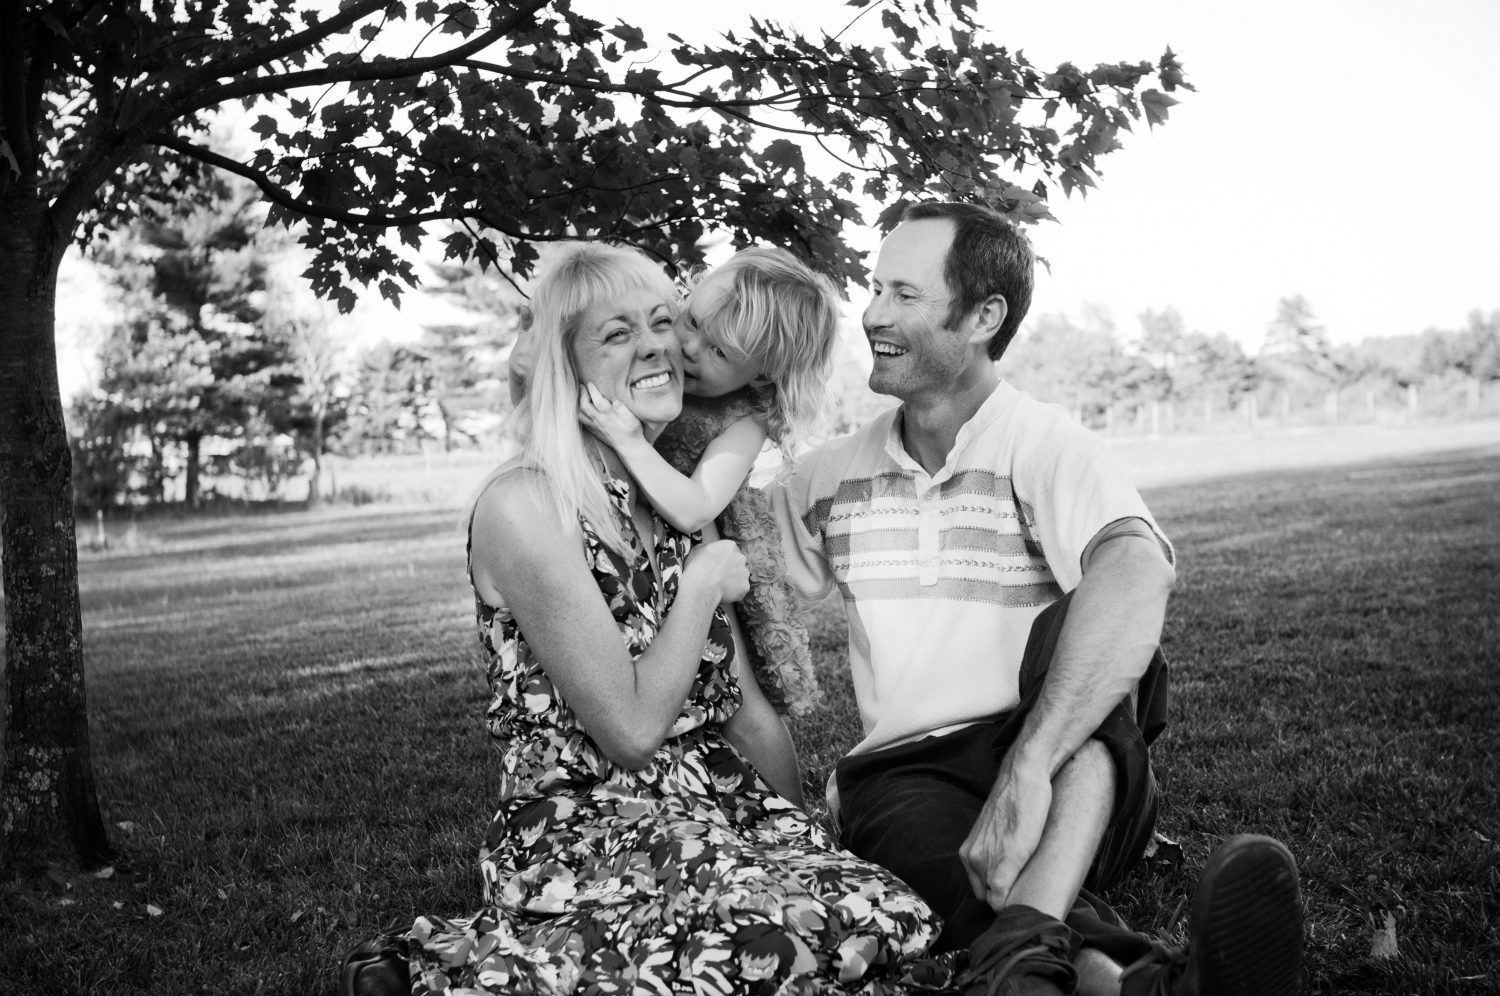 black and white candid portrait of parents with young daughter laughing together on the grass beneath a tree